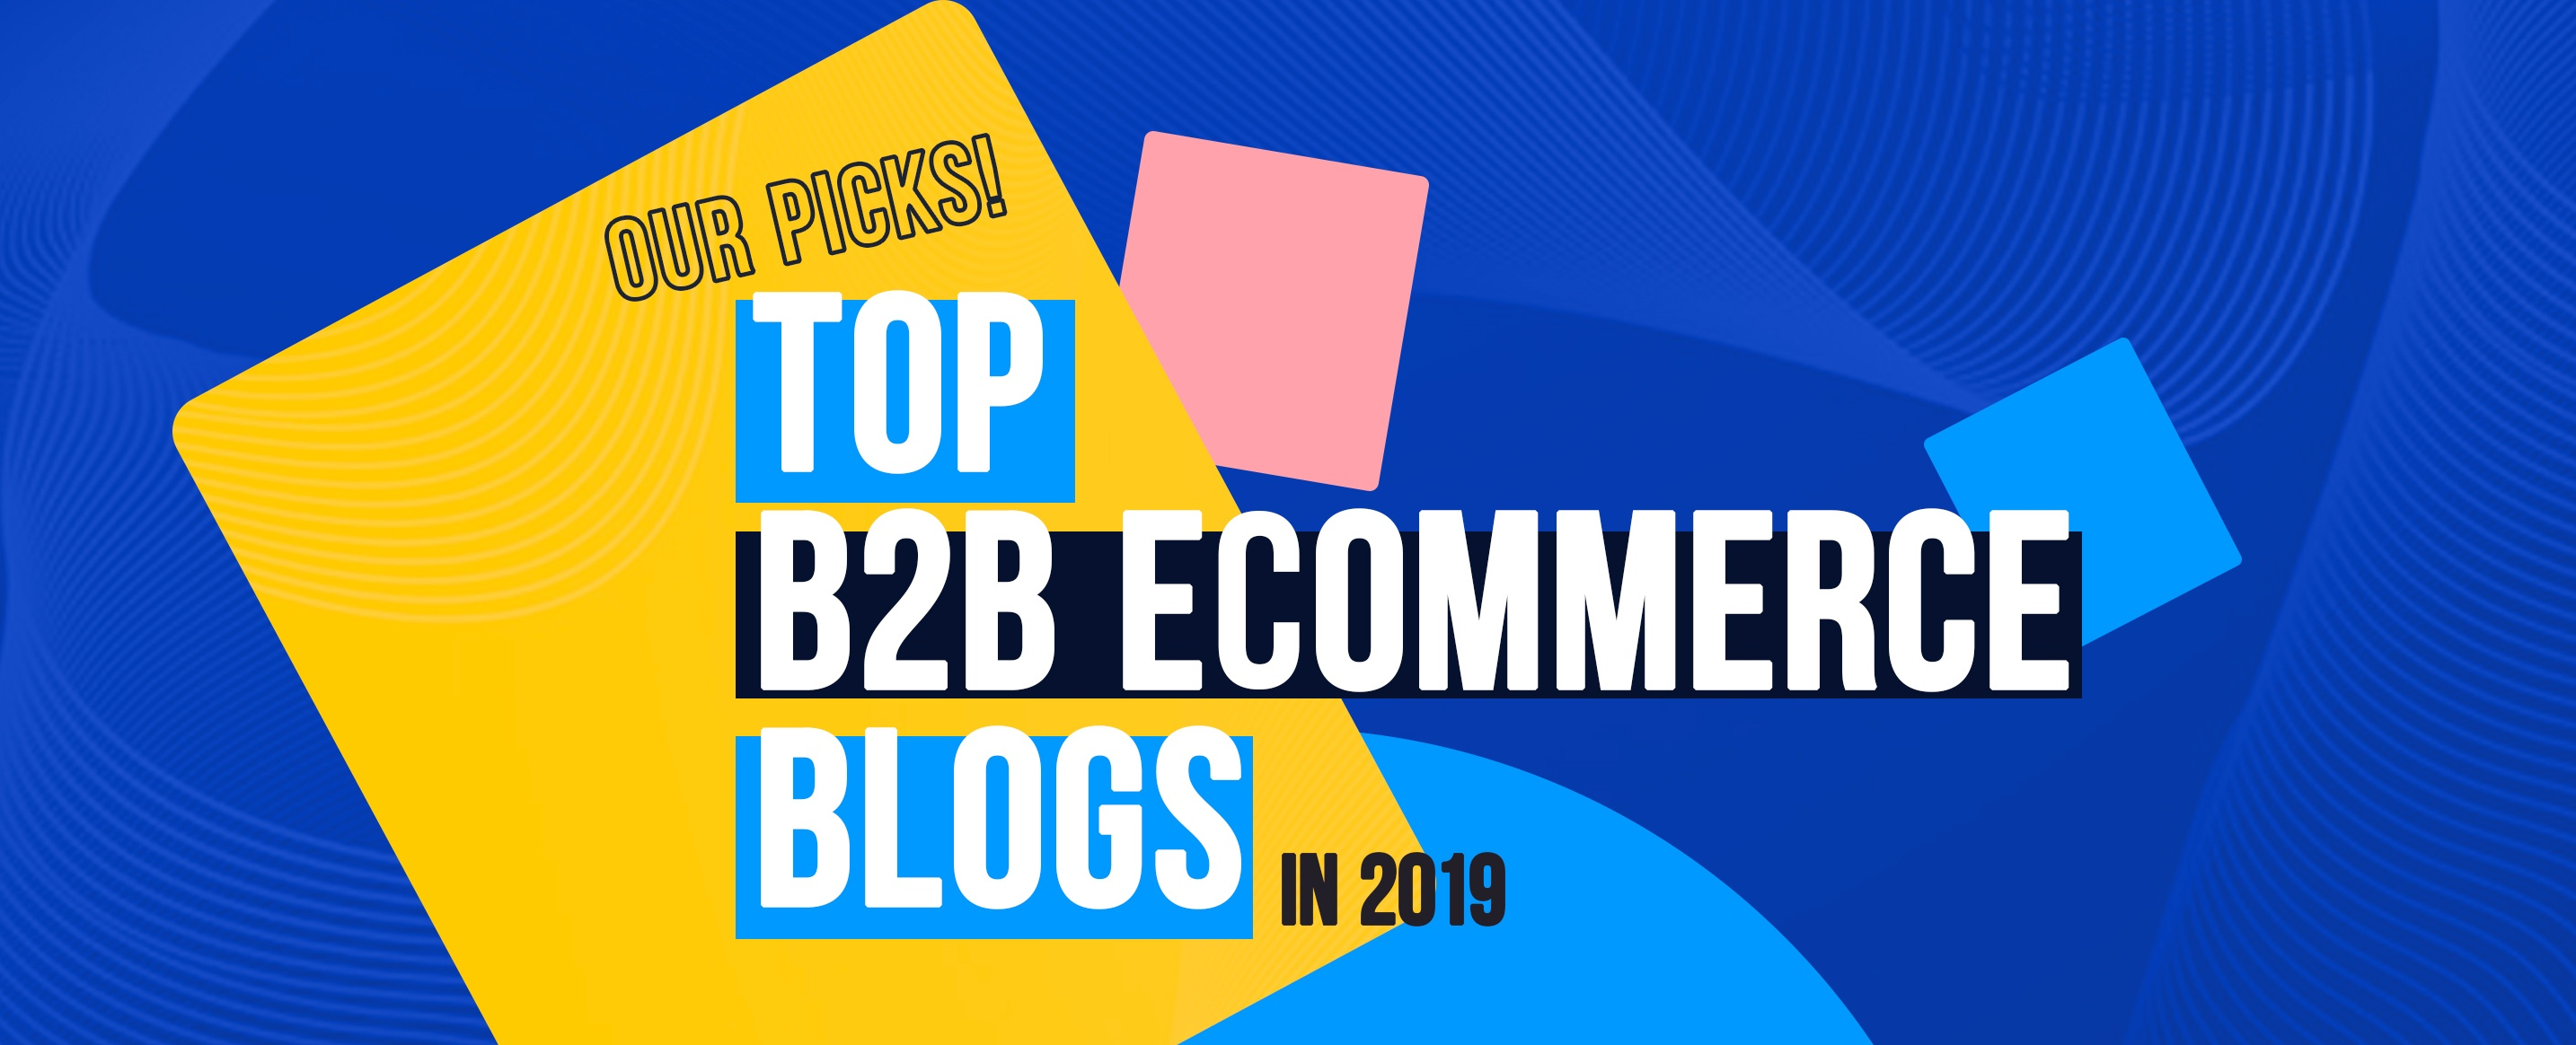 Top-B2B-ECommerce-Blogs-of-2019--Our-Picks